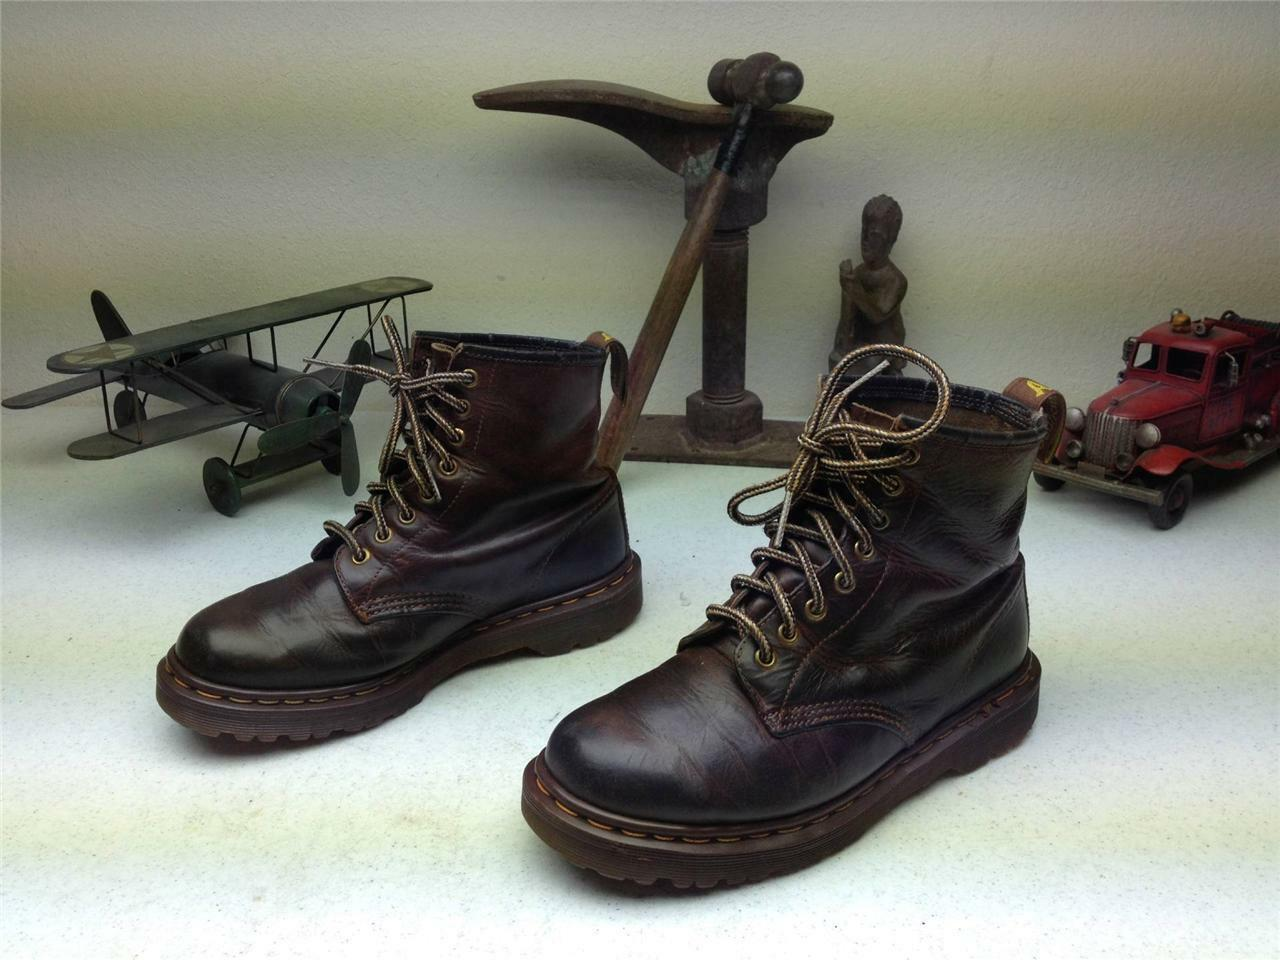 BROWN DISTRESSED DR.MARTENS MADE IN ENGLAND AIR WAIR LACE UP BOOTS SIZE 6 7D